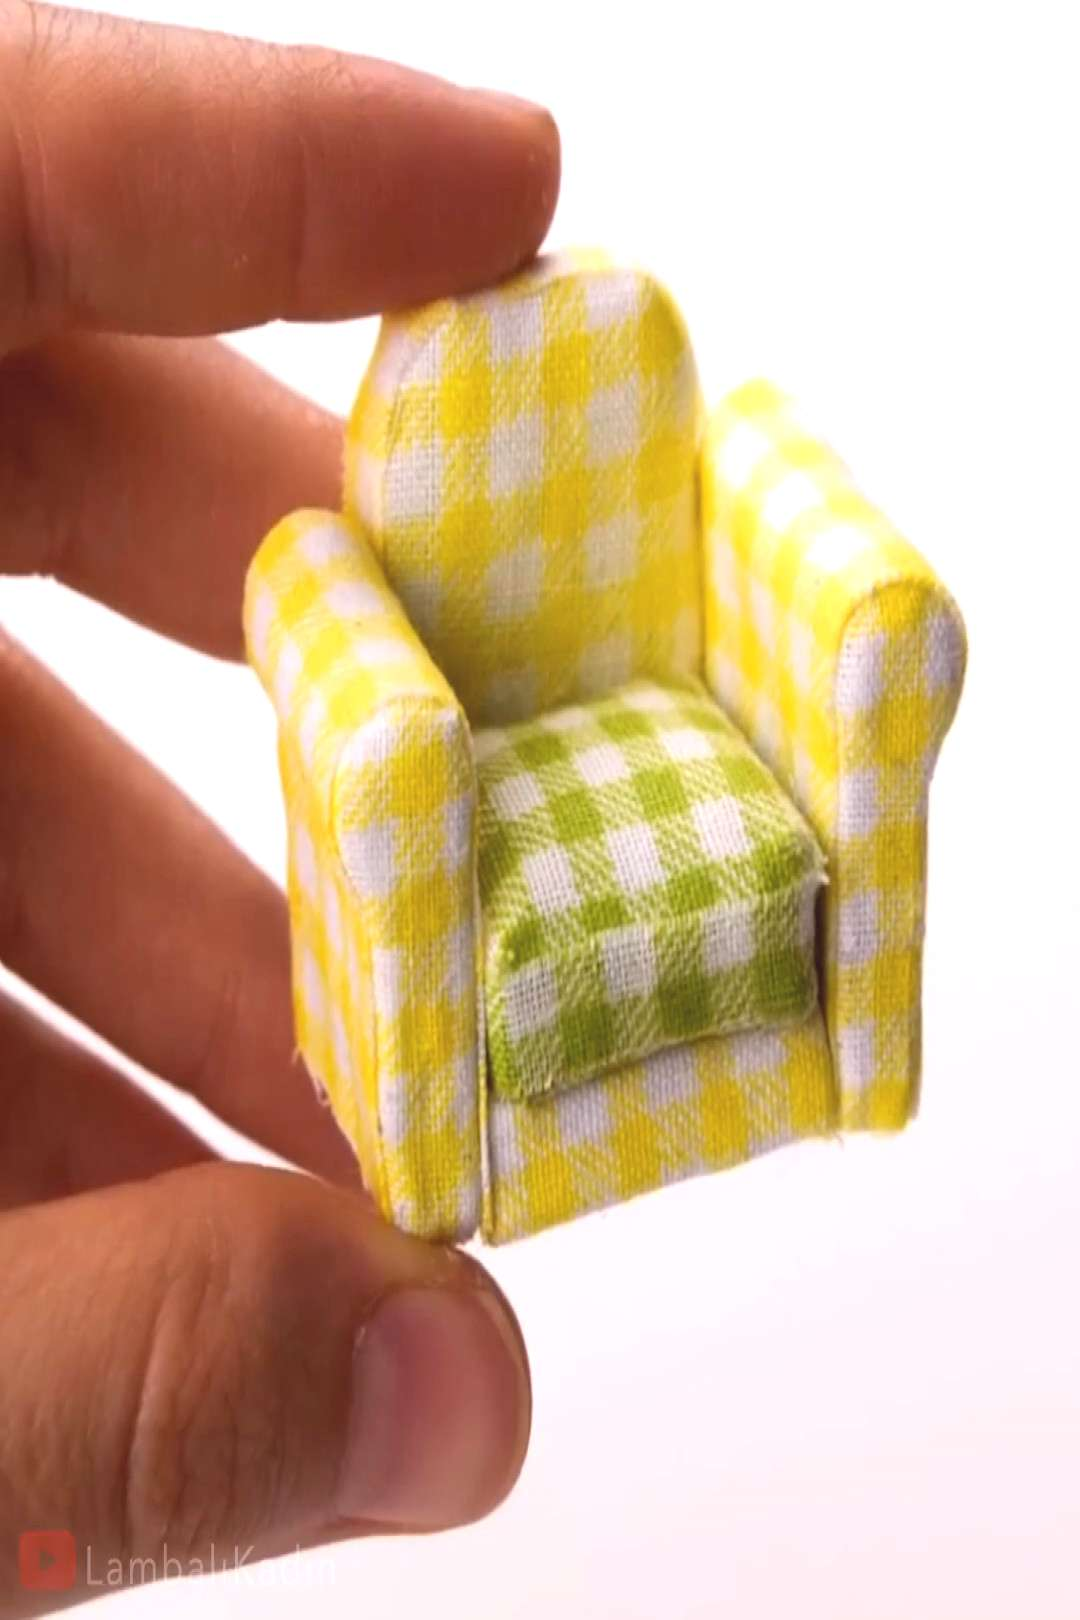 MINIATURE ARMCHAIR Your dollhouse is never complete without miniature furniture! By LambaliKadin